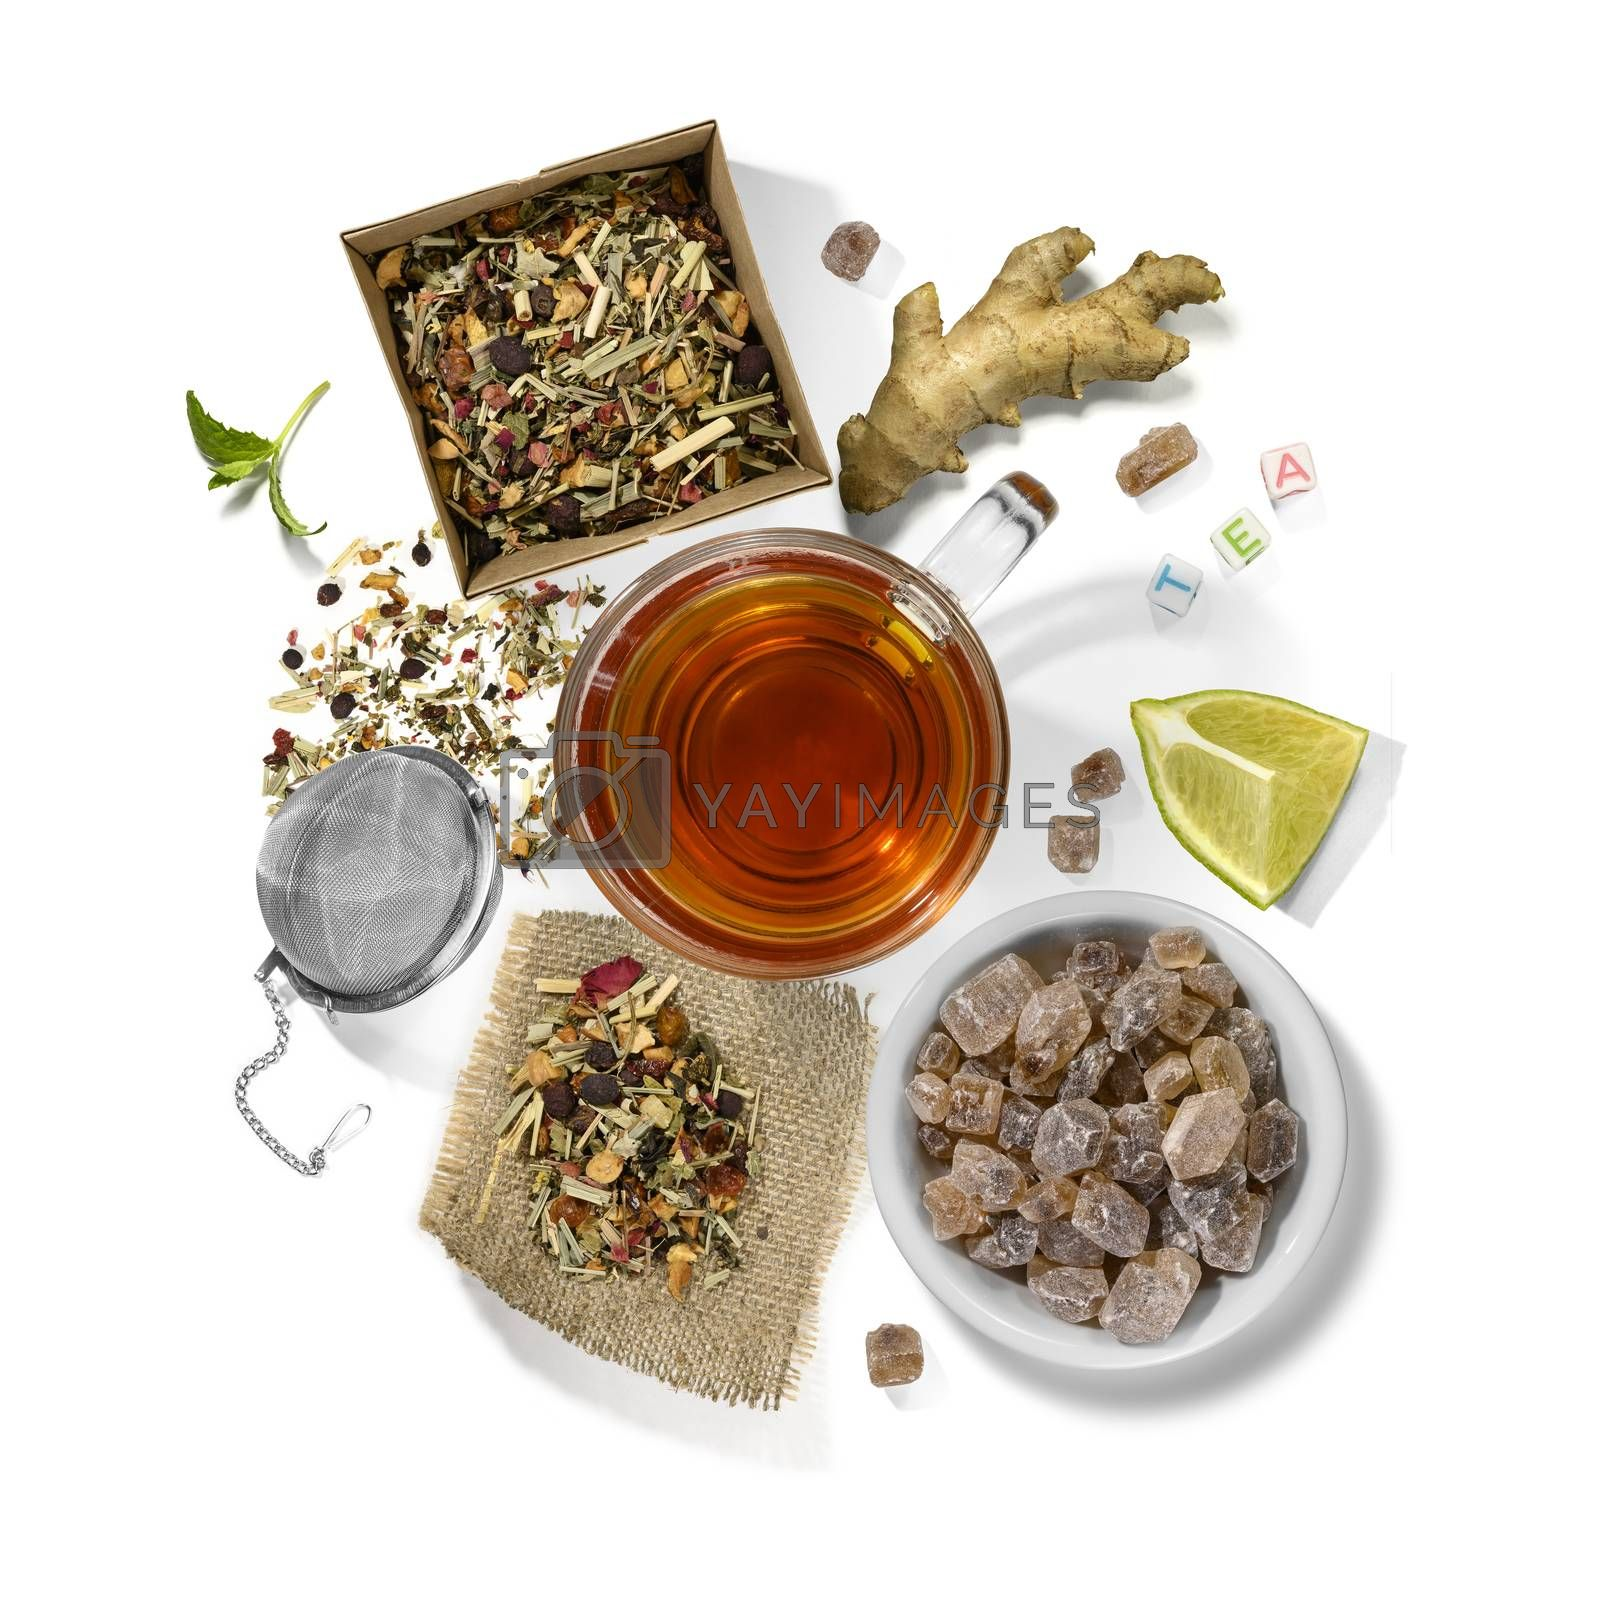 Picking of herbs, berries, tea and accessories. Top view on white background.